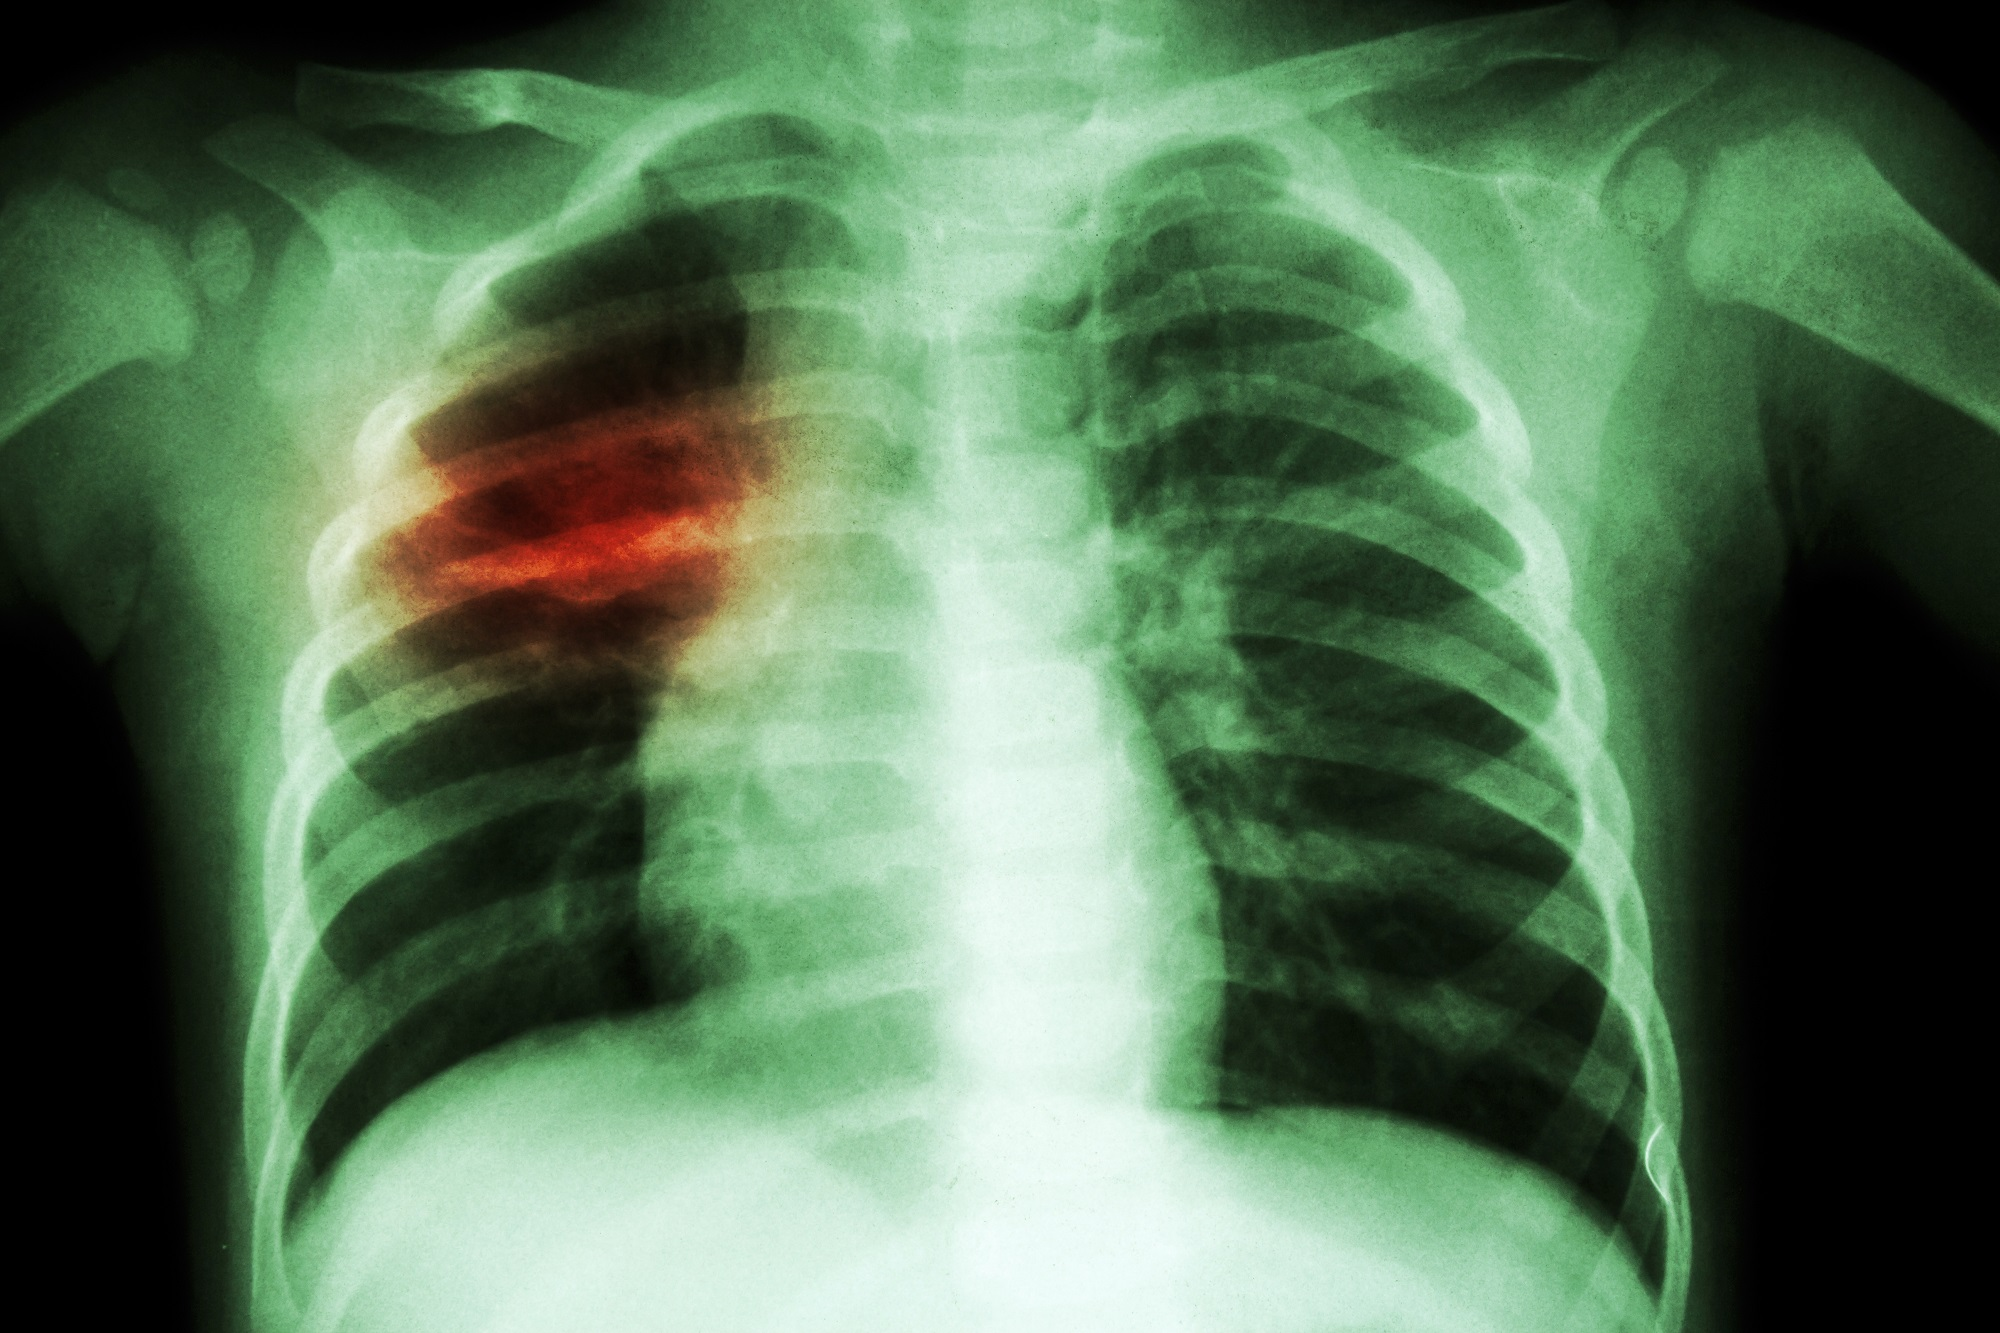 Lung Disease Increasingly Detected in Children With Systemic Juvenile Idiopathic Arthritis - Rheumatology Advisor